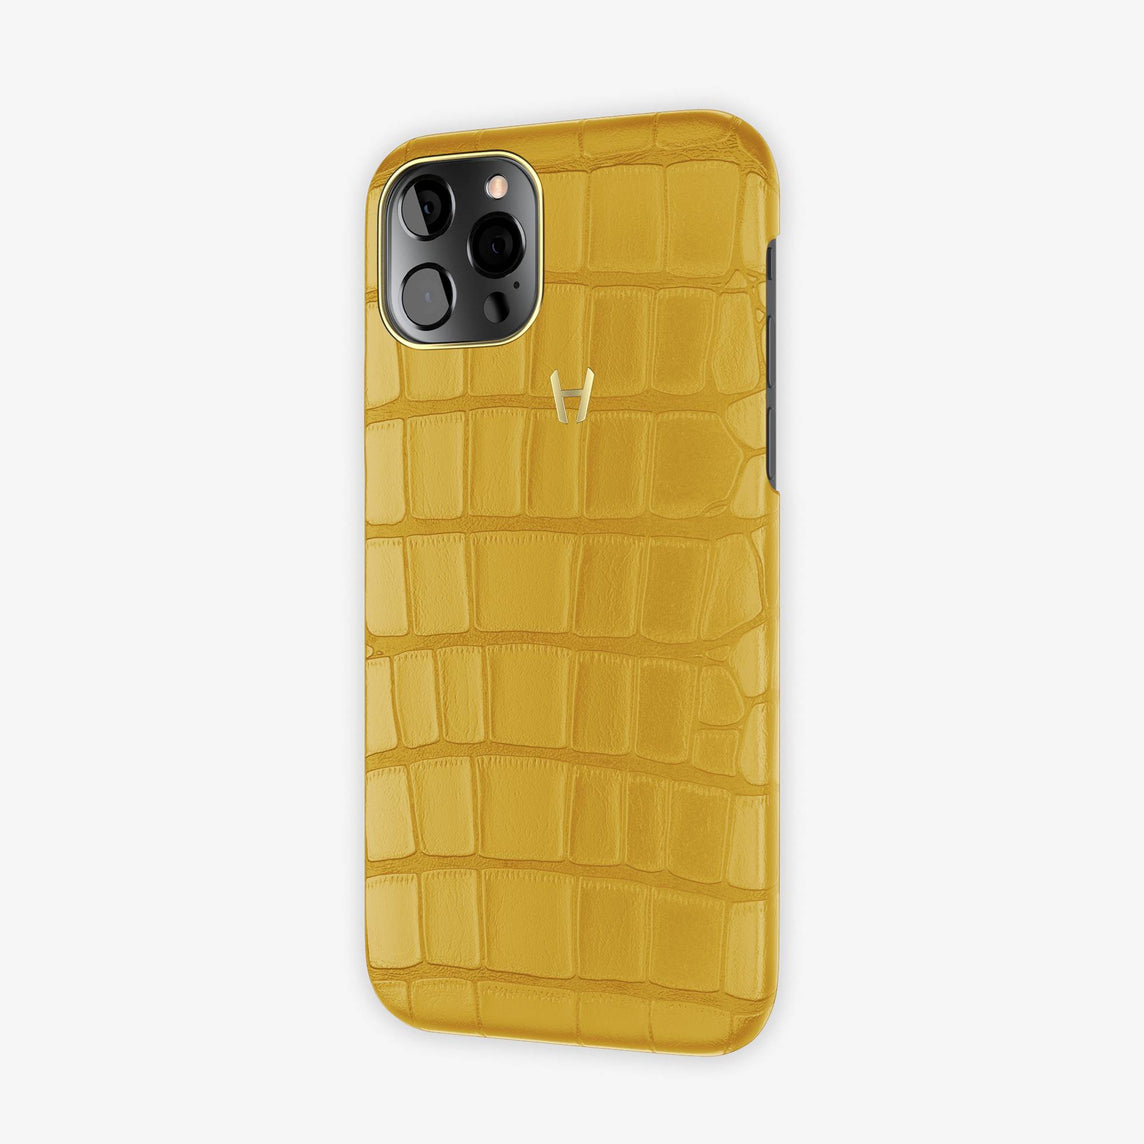 Alligator Case Apple iPhone 12 & iPhone 12 Pro | Yellow - Yellow Gold